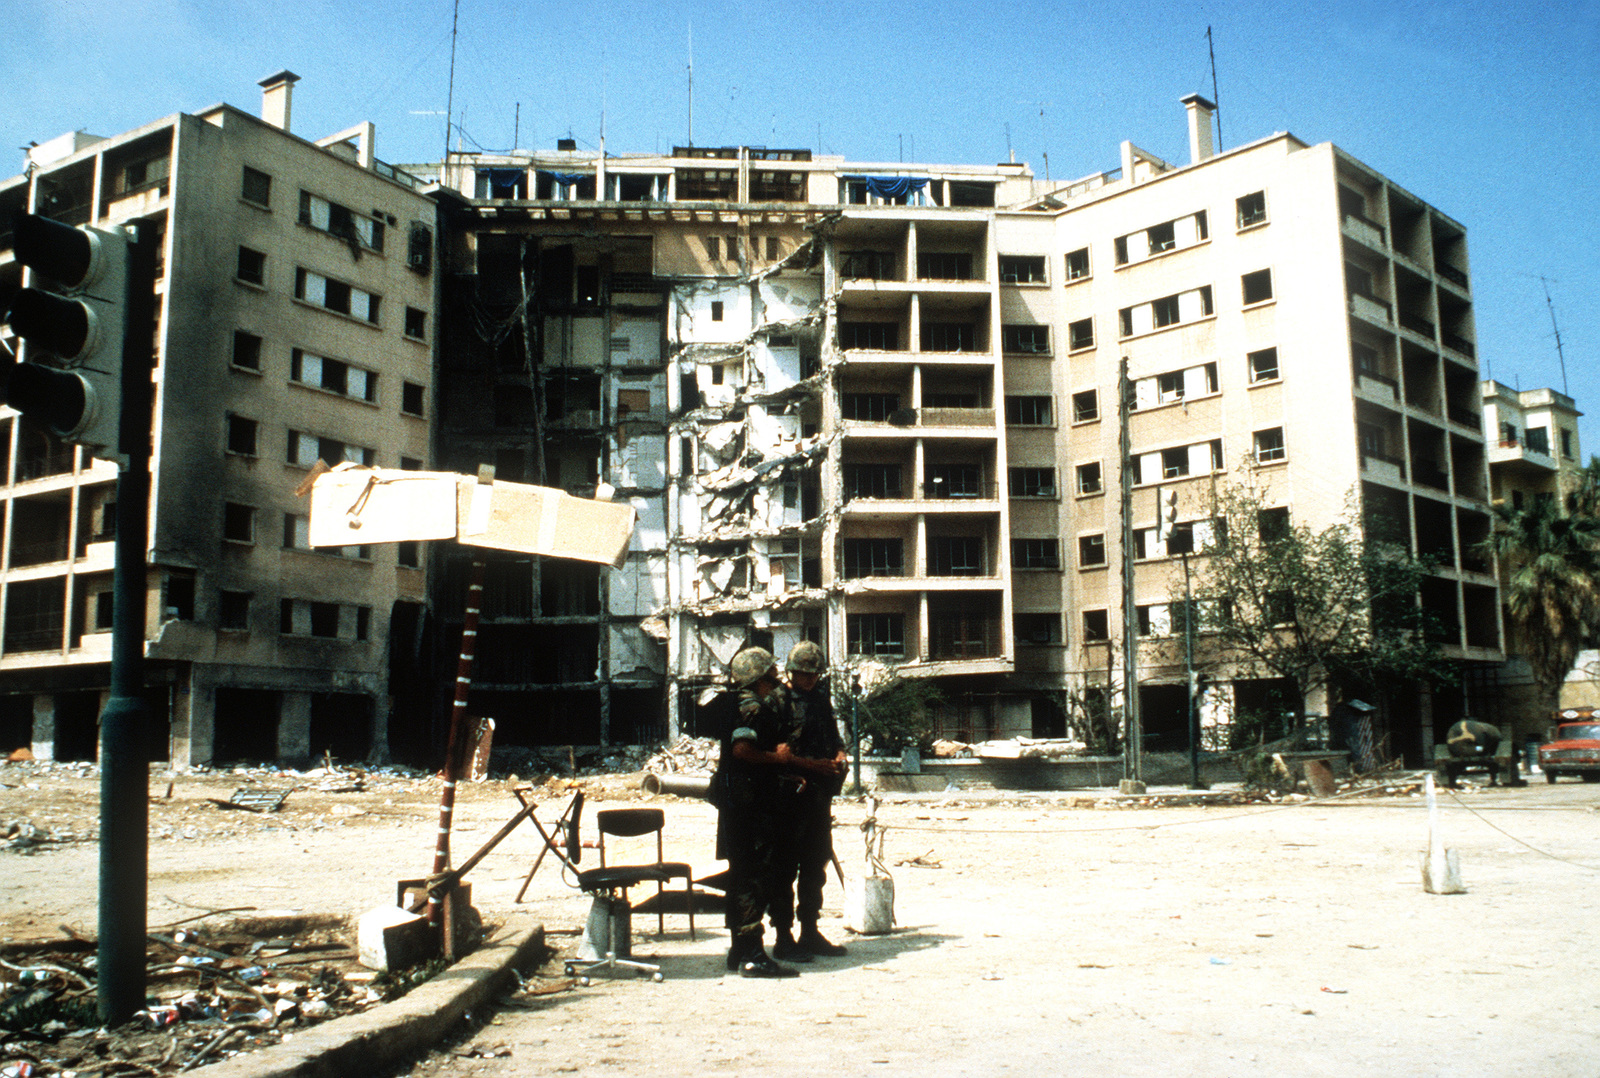 Two Marines stand in front of the U.S. Embassy which was destroyed by a terrorist bomb attack. The Marines are members of a multinational peacekeeping force